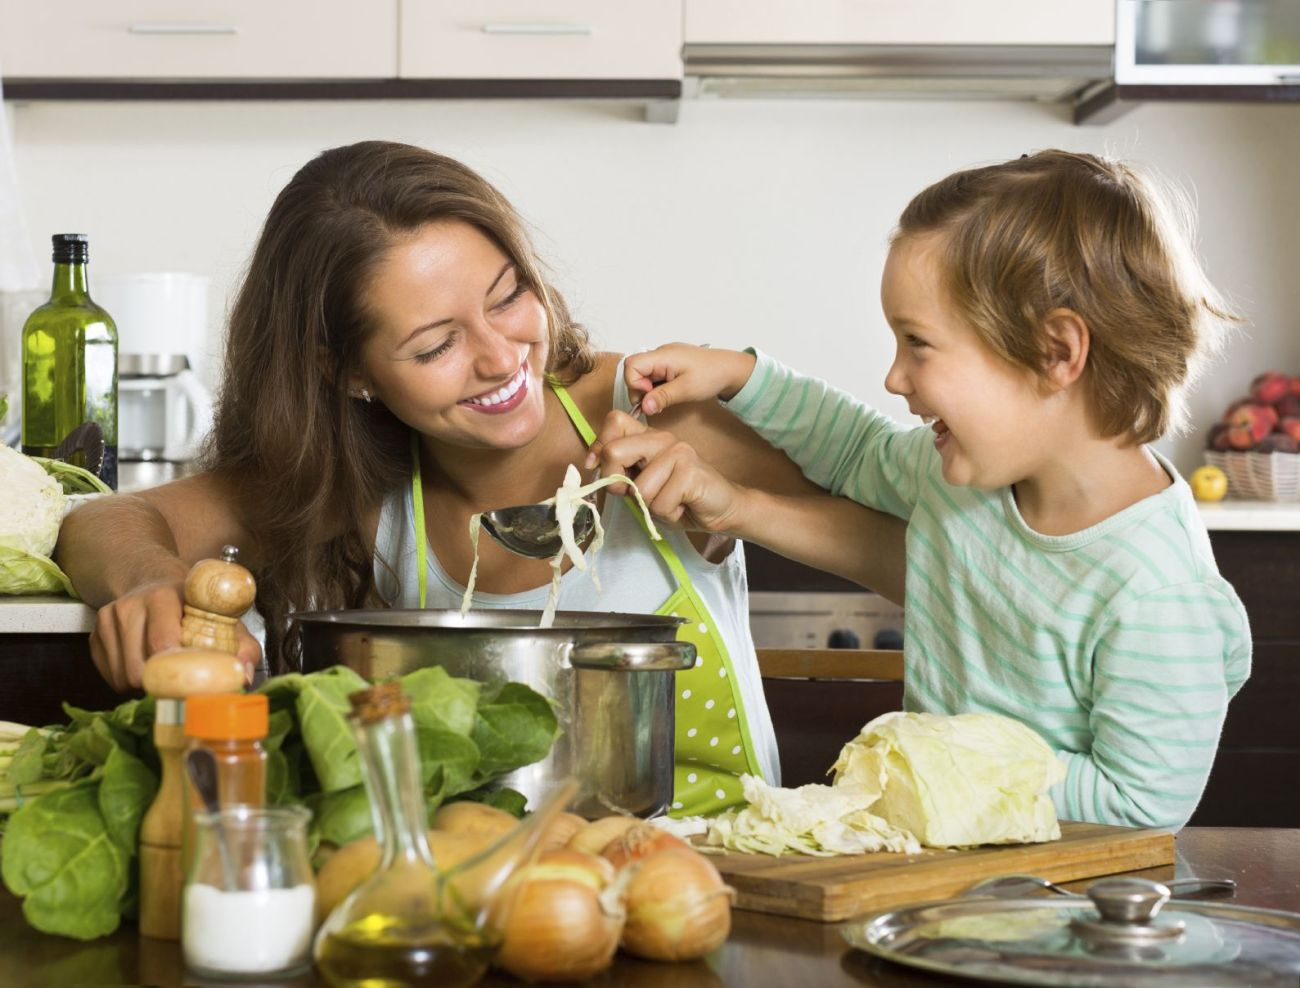 Happy woman with little daughter cooking with vegetables at home kitchen